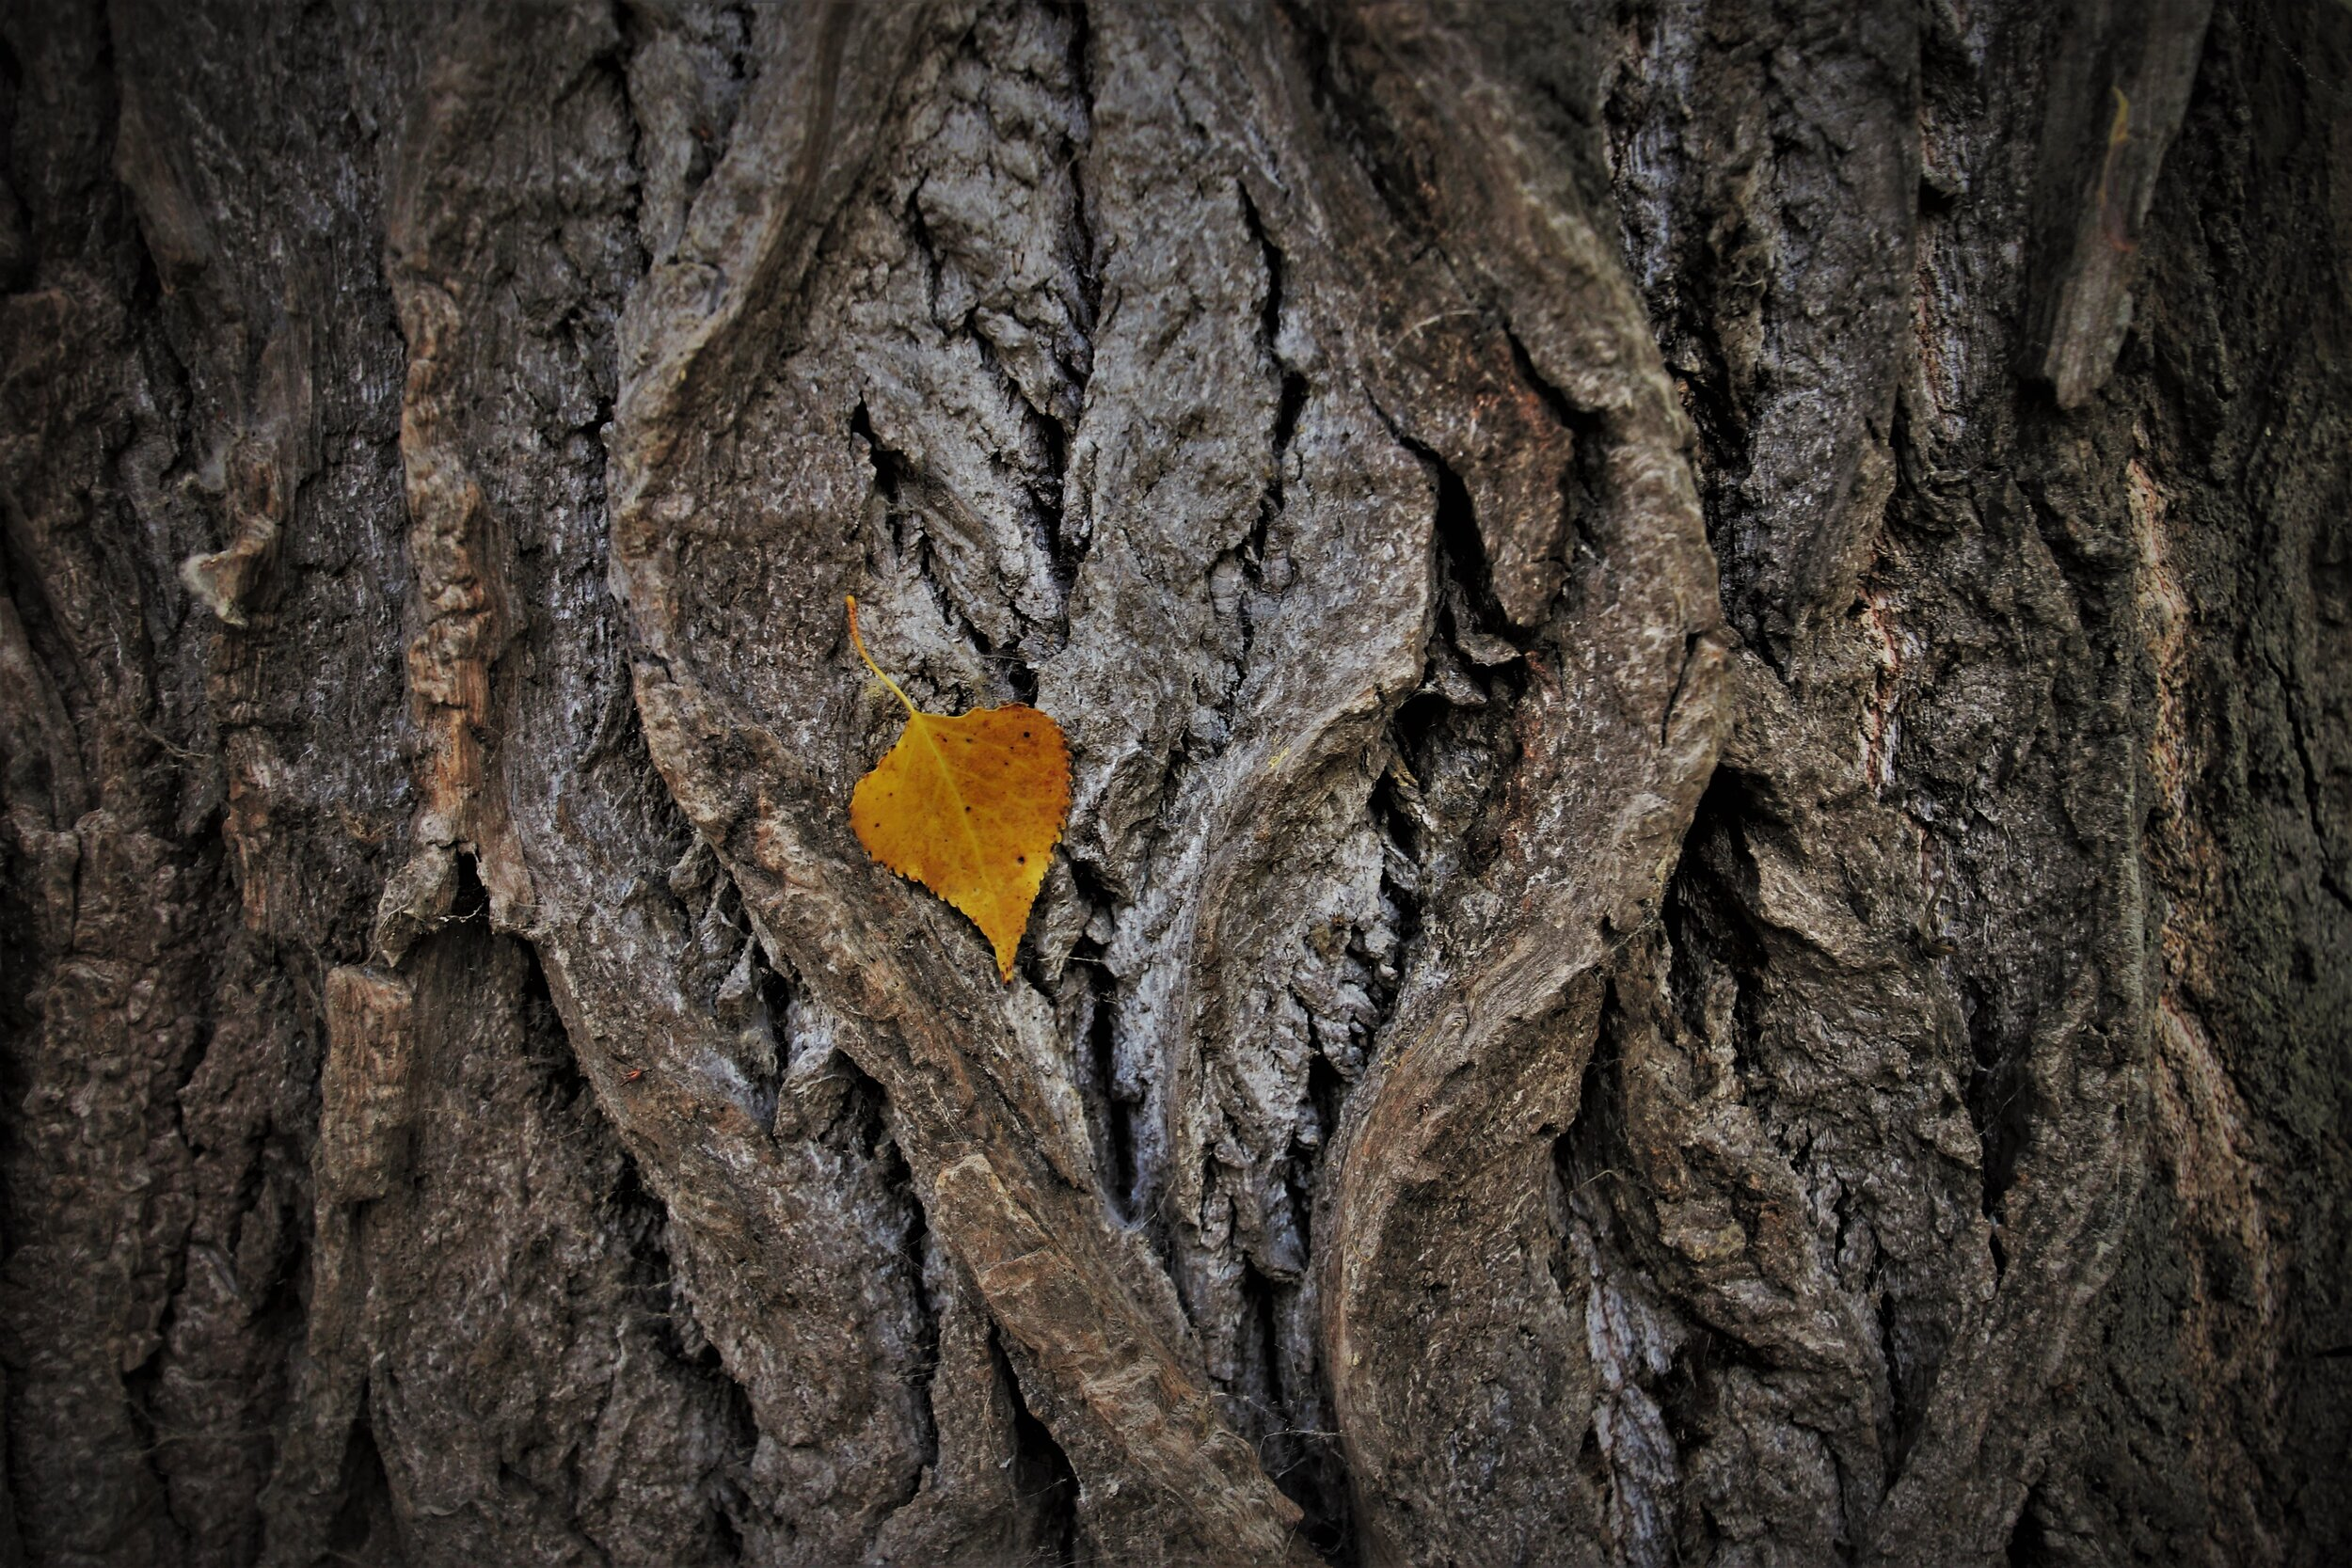 Riddle #6 - The bark of the tree